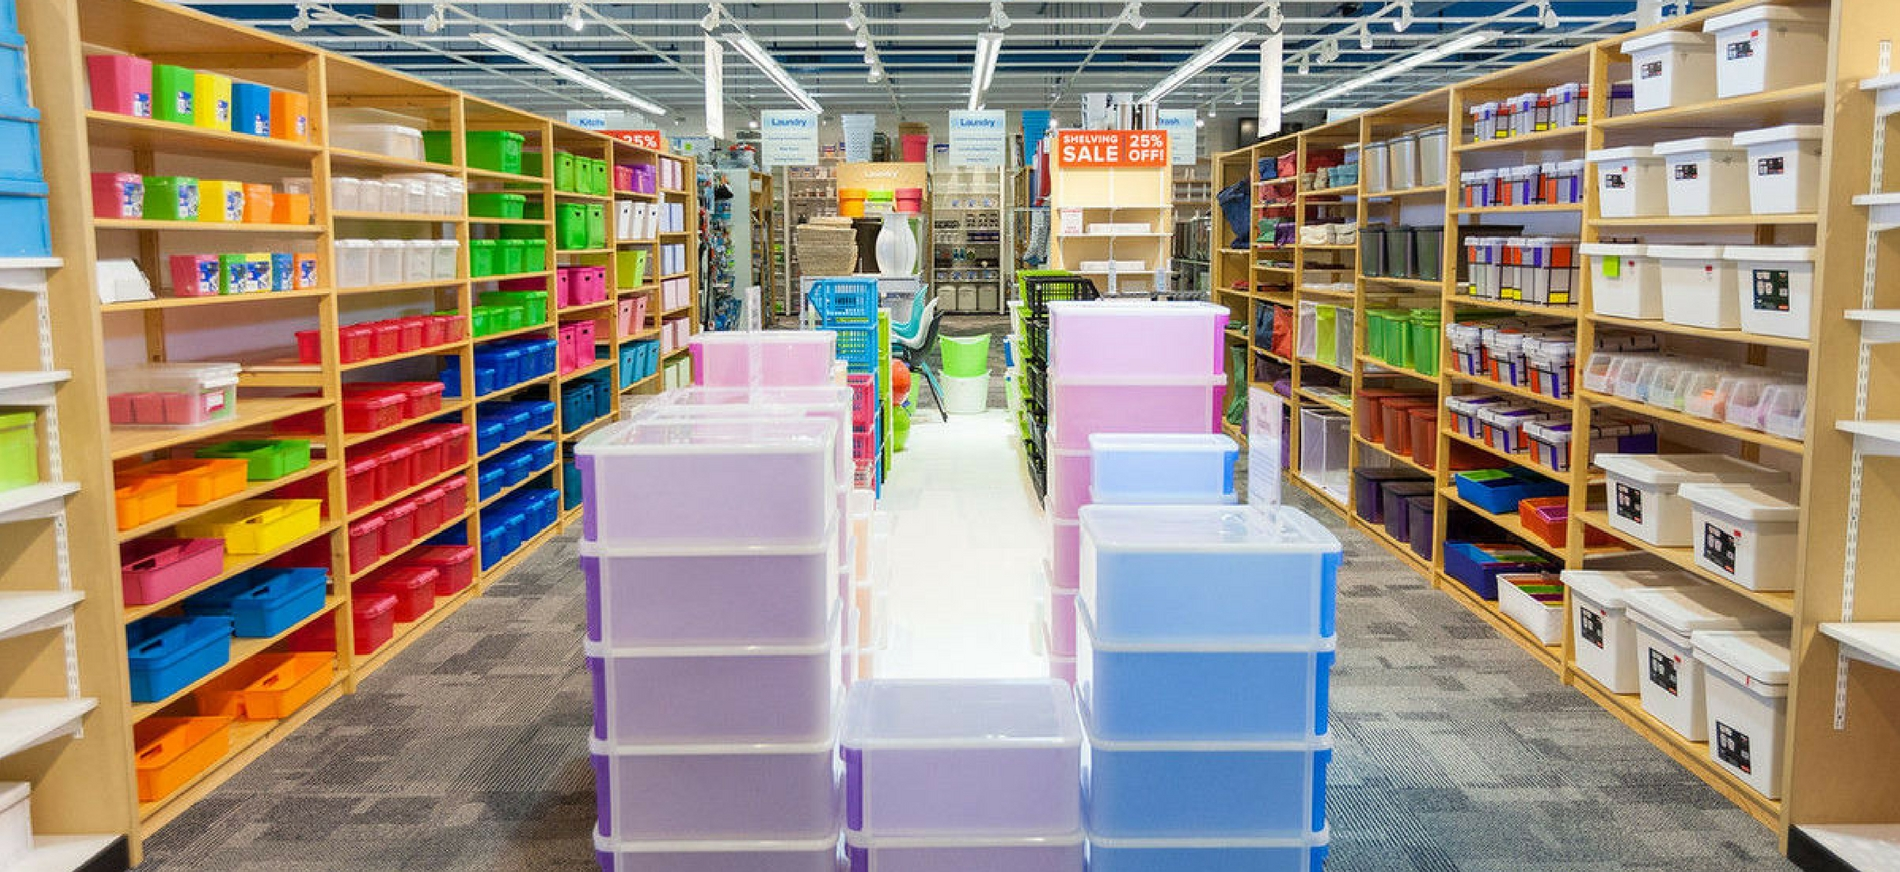 6 Great Places To Buy College Furniture - The Container Store